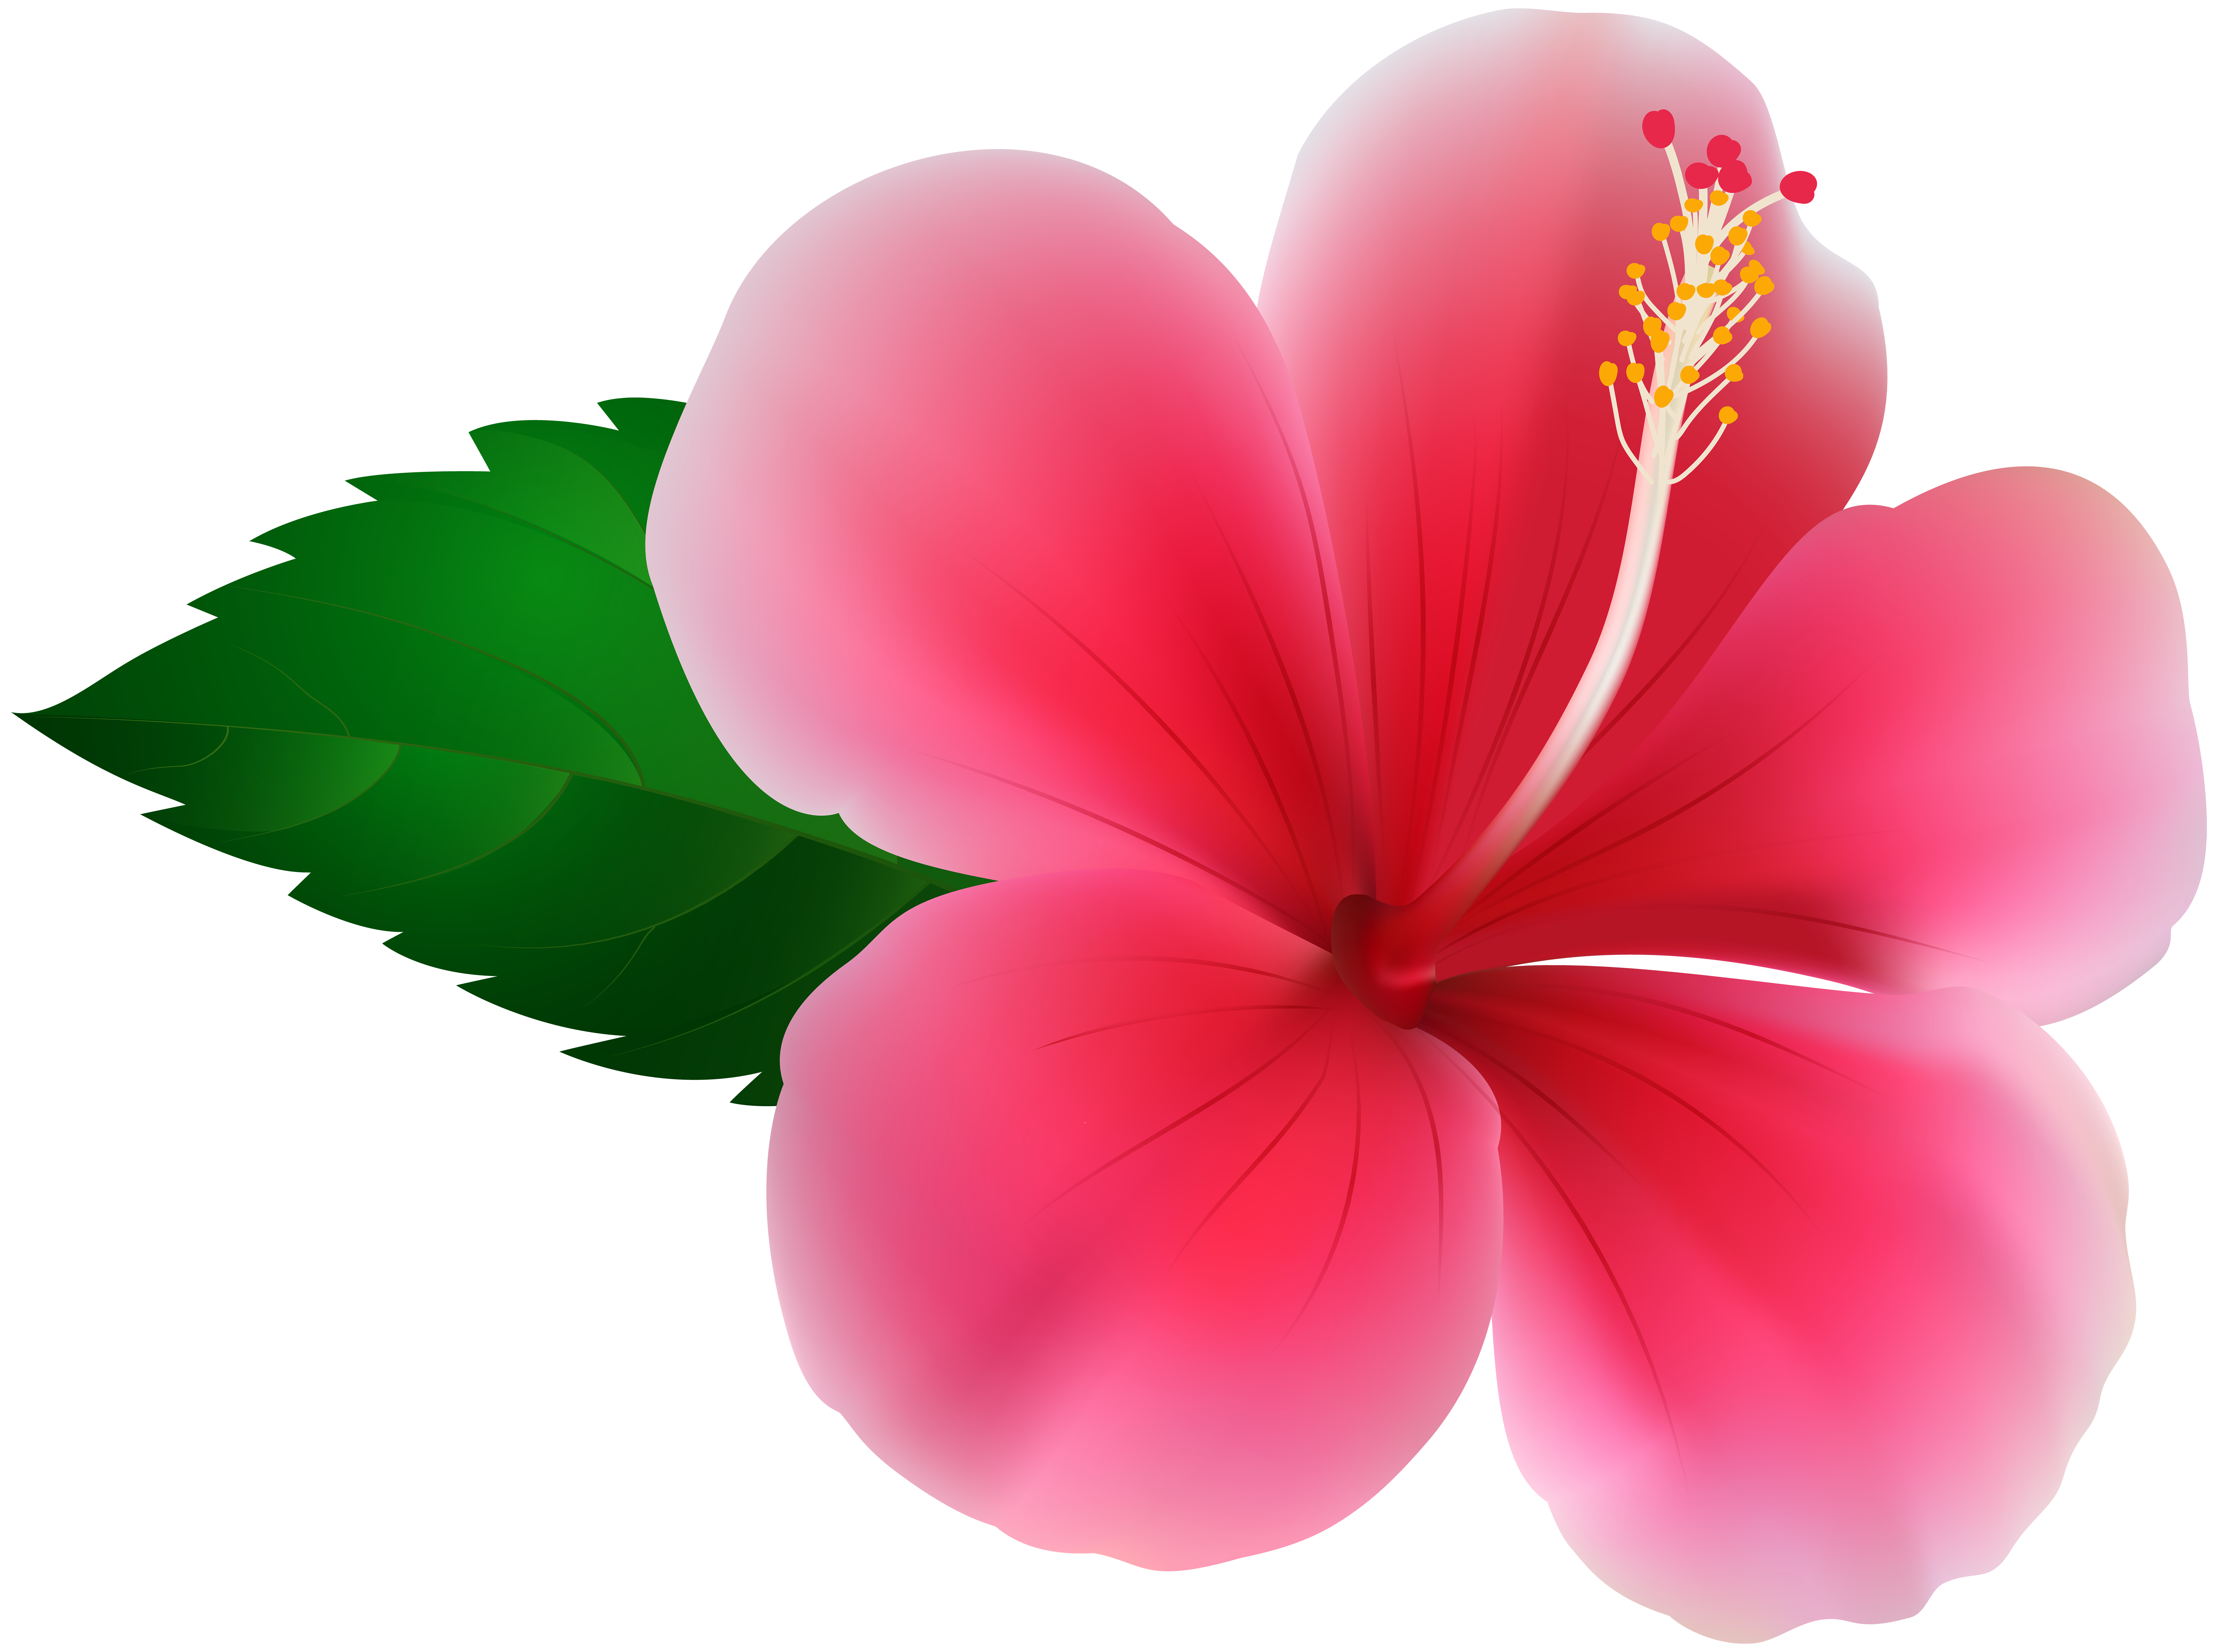 Pink hibiscus flower png. Clip art image gallery